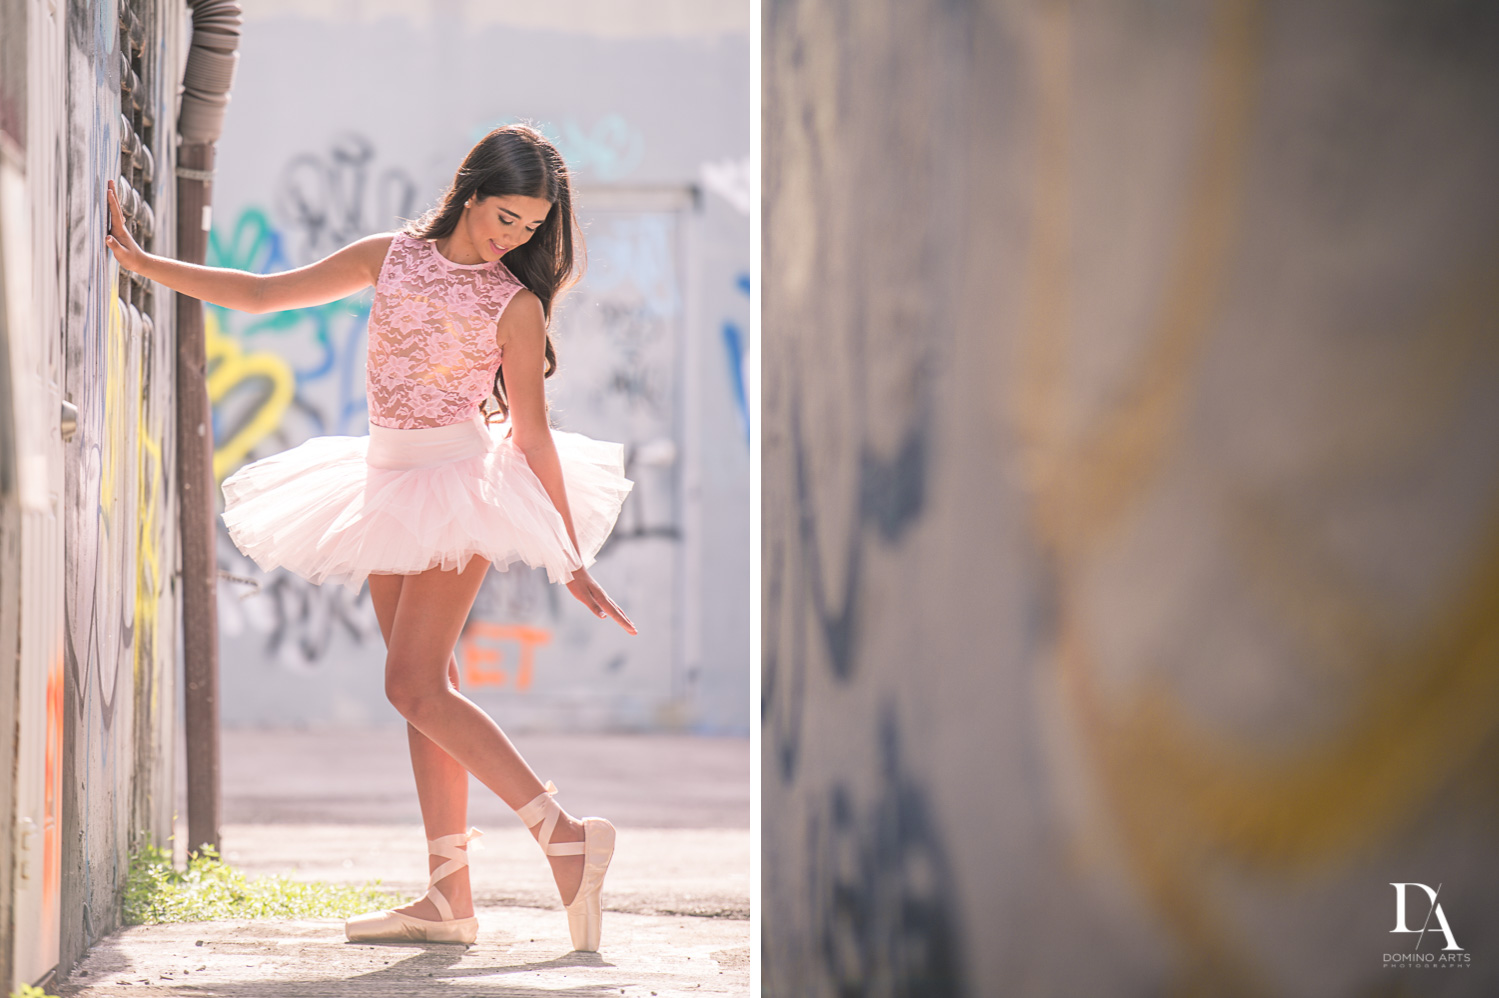 Ballerina Pre Bat Mitzvah Photography at Wynwood Walls by Domino Arts Photography